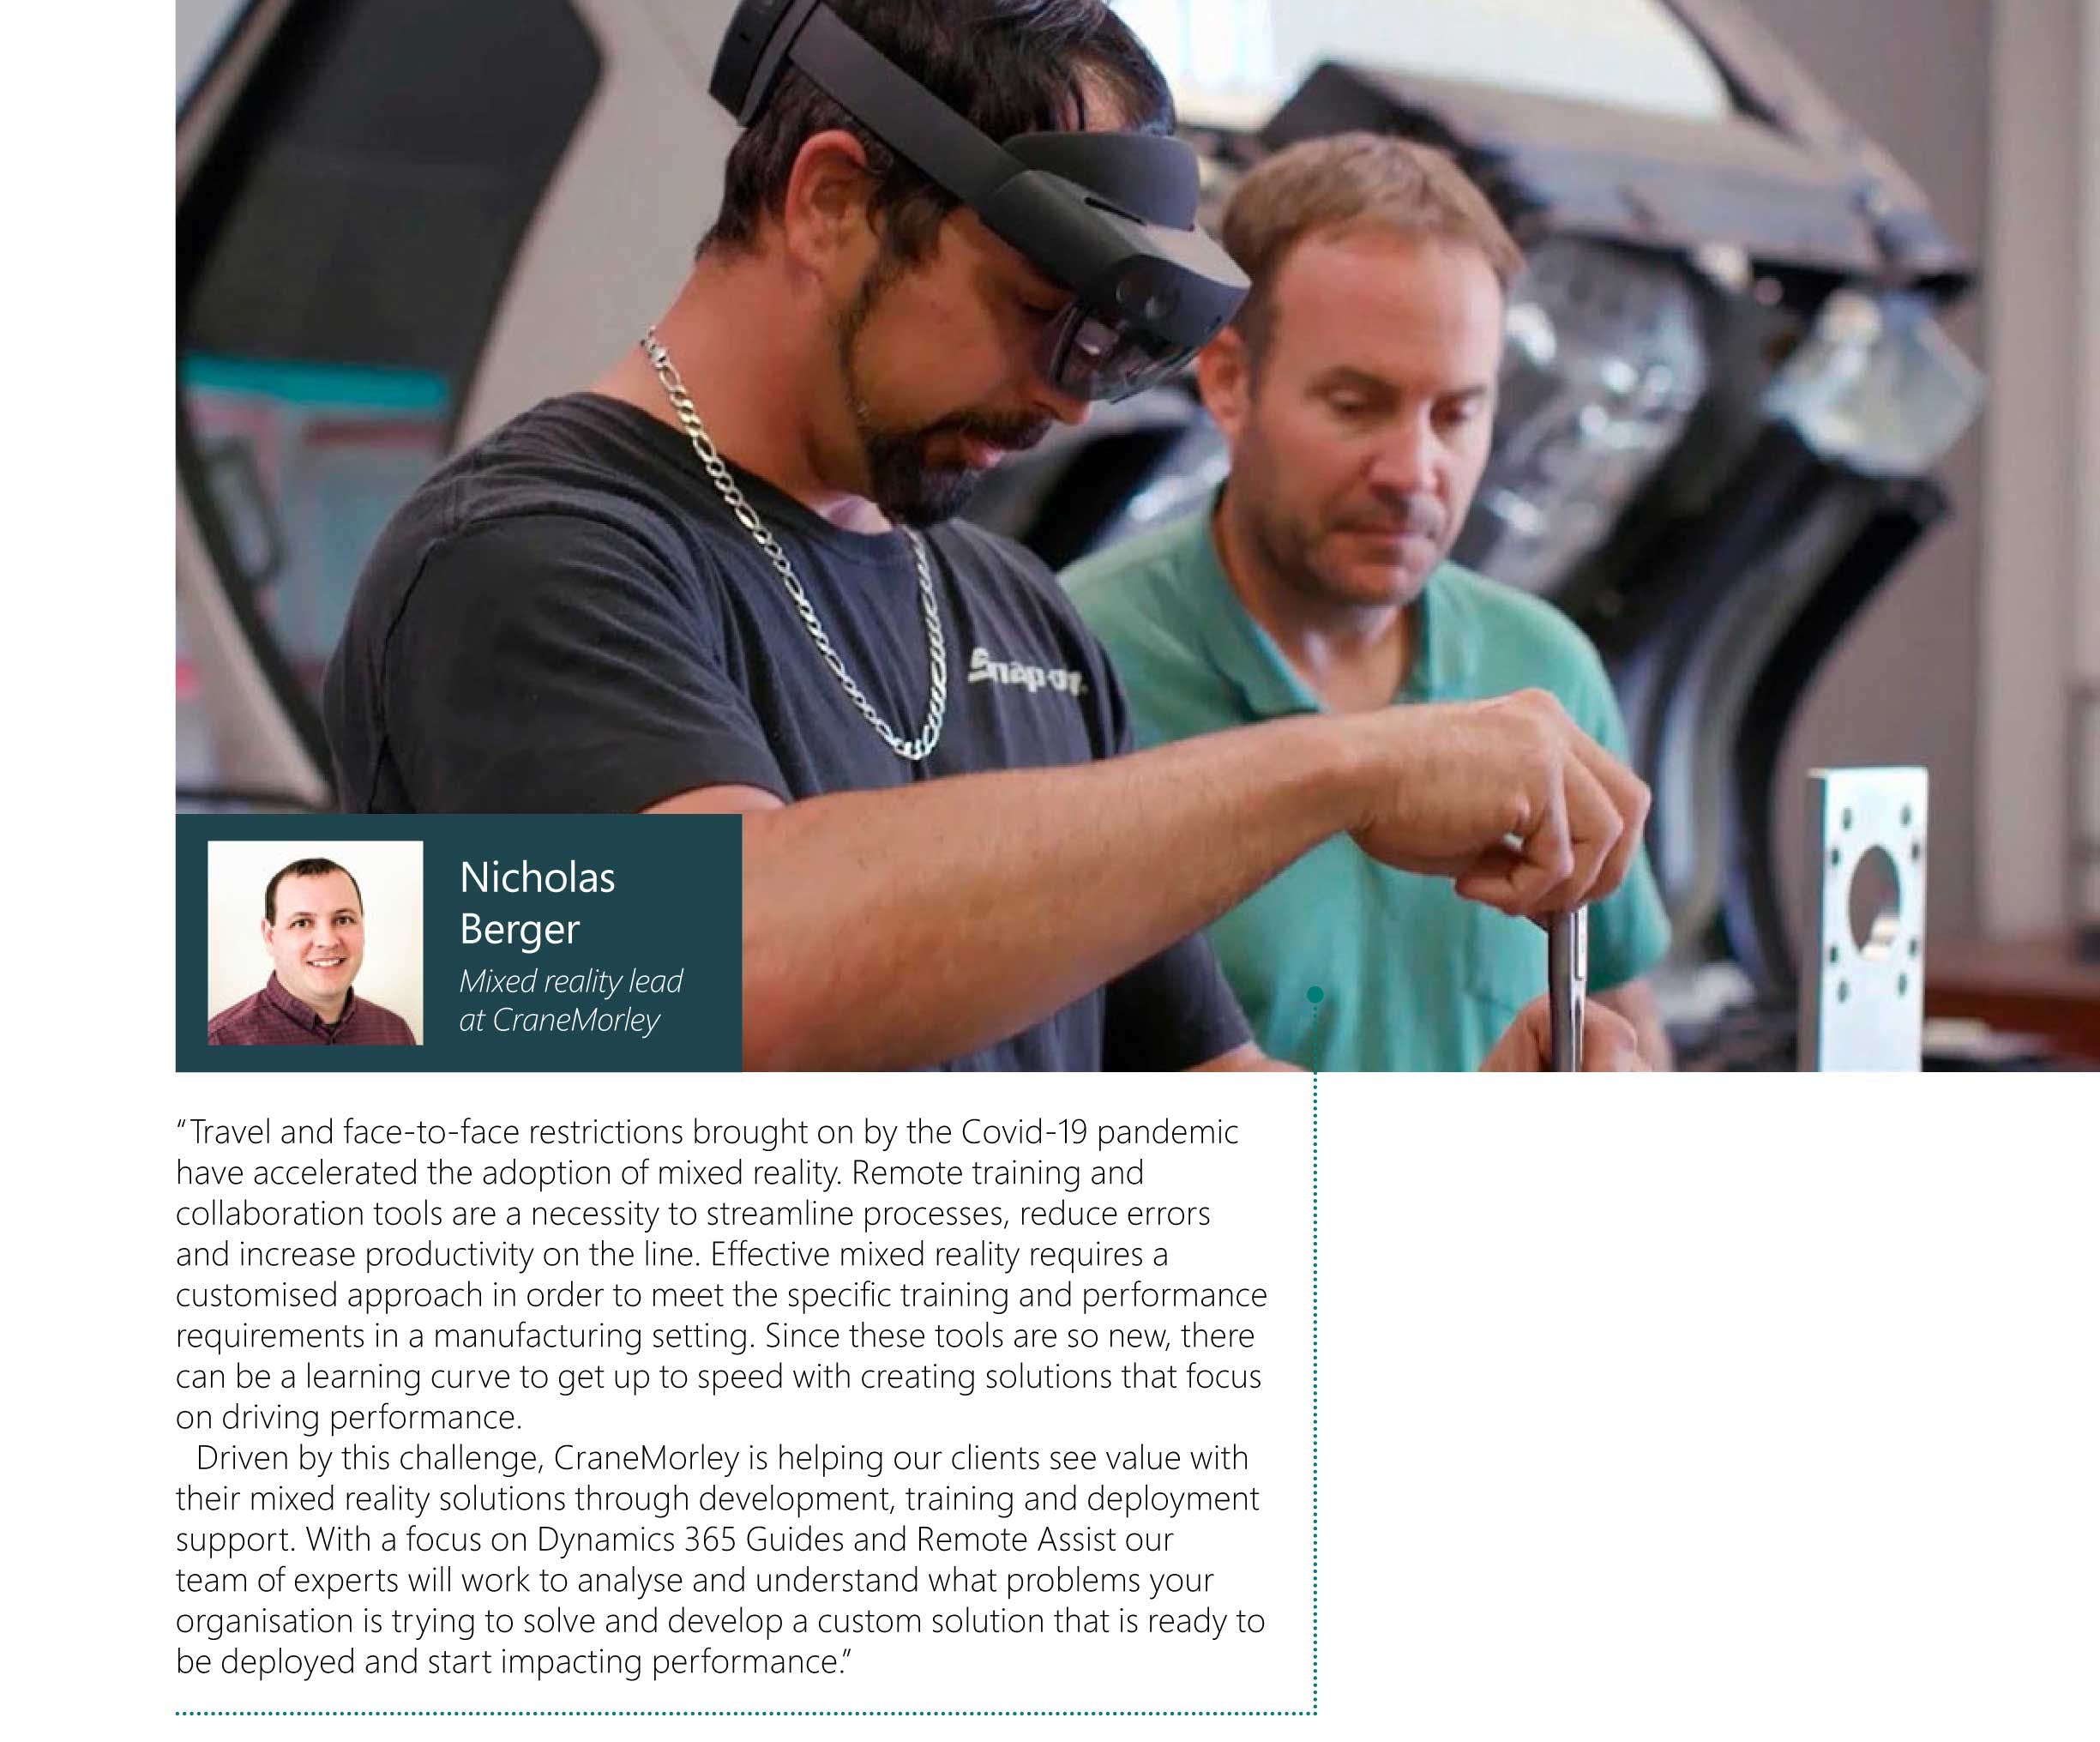 The Record Magazine cut out of Mixed Reality Lead Nick Berger on how CraneMorley is helping companies train employees during the Covid-19 panademic